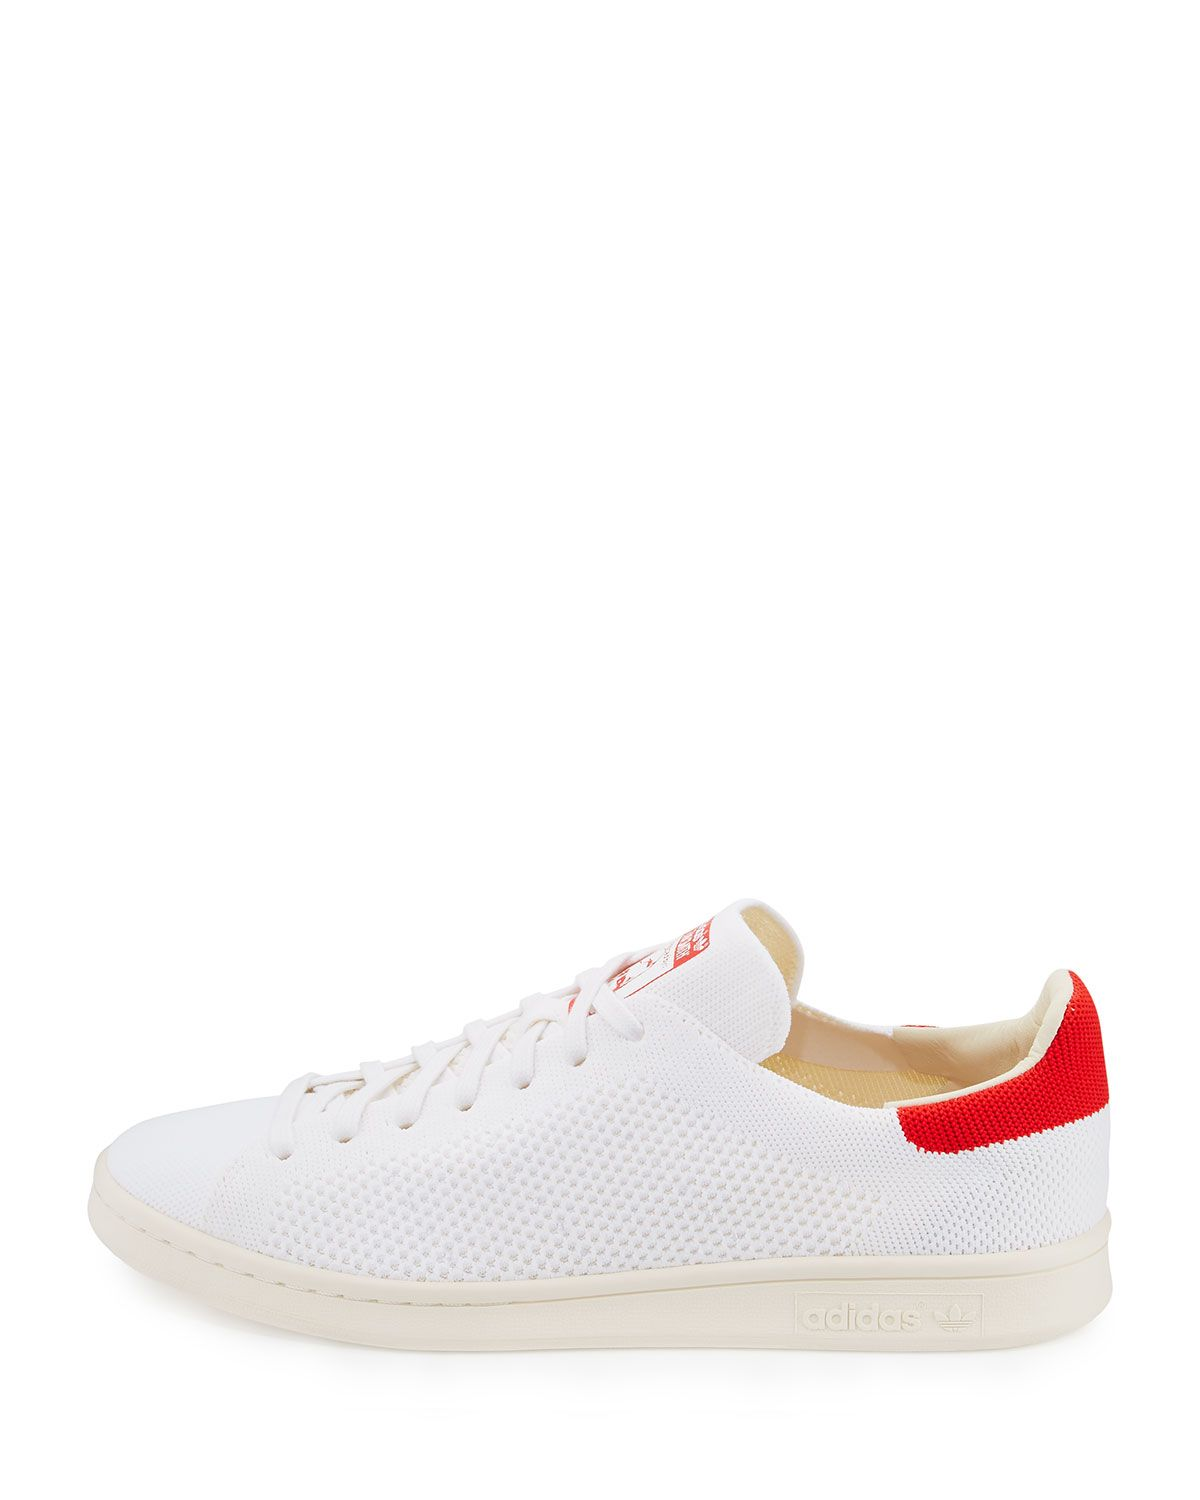 a44a7cf1ac8 Stan Smith Primeknit Sneakers White/Red | Products | Sneakers ...